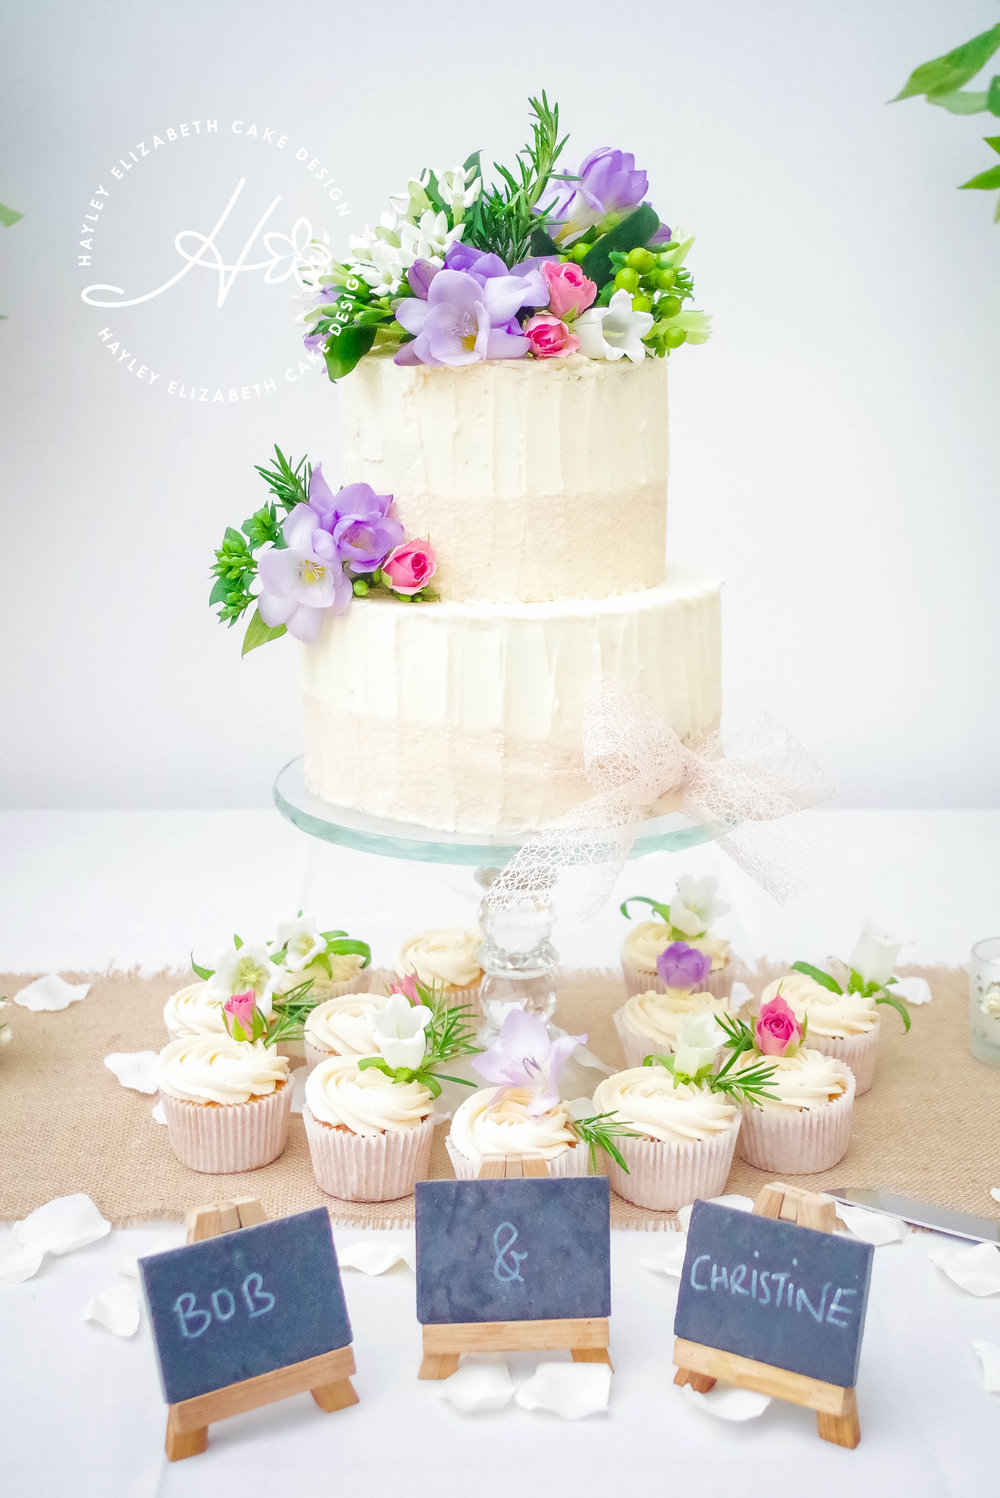 buttercream-weddingcake-with-fresh-flowers.jpg